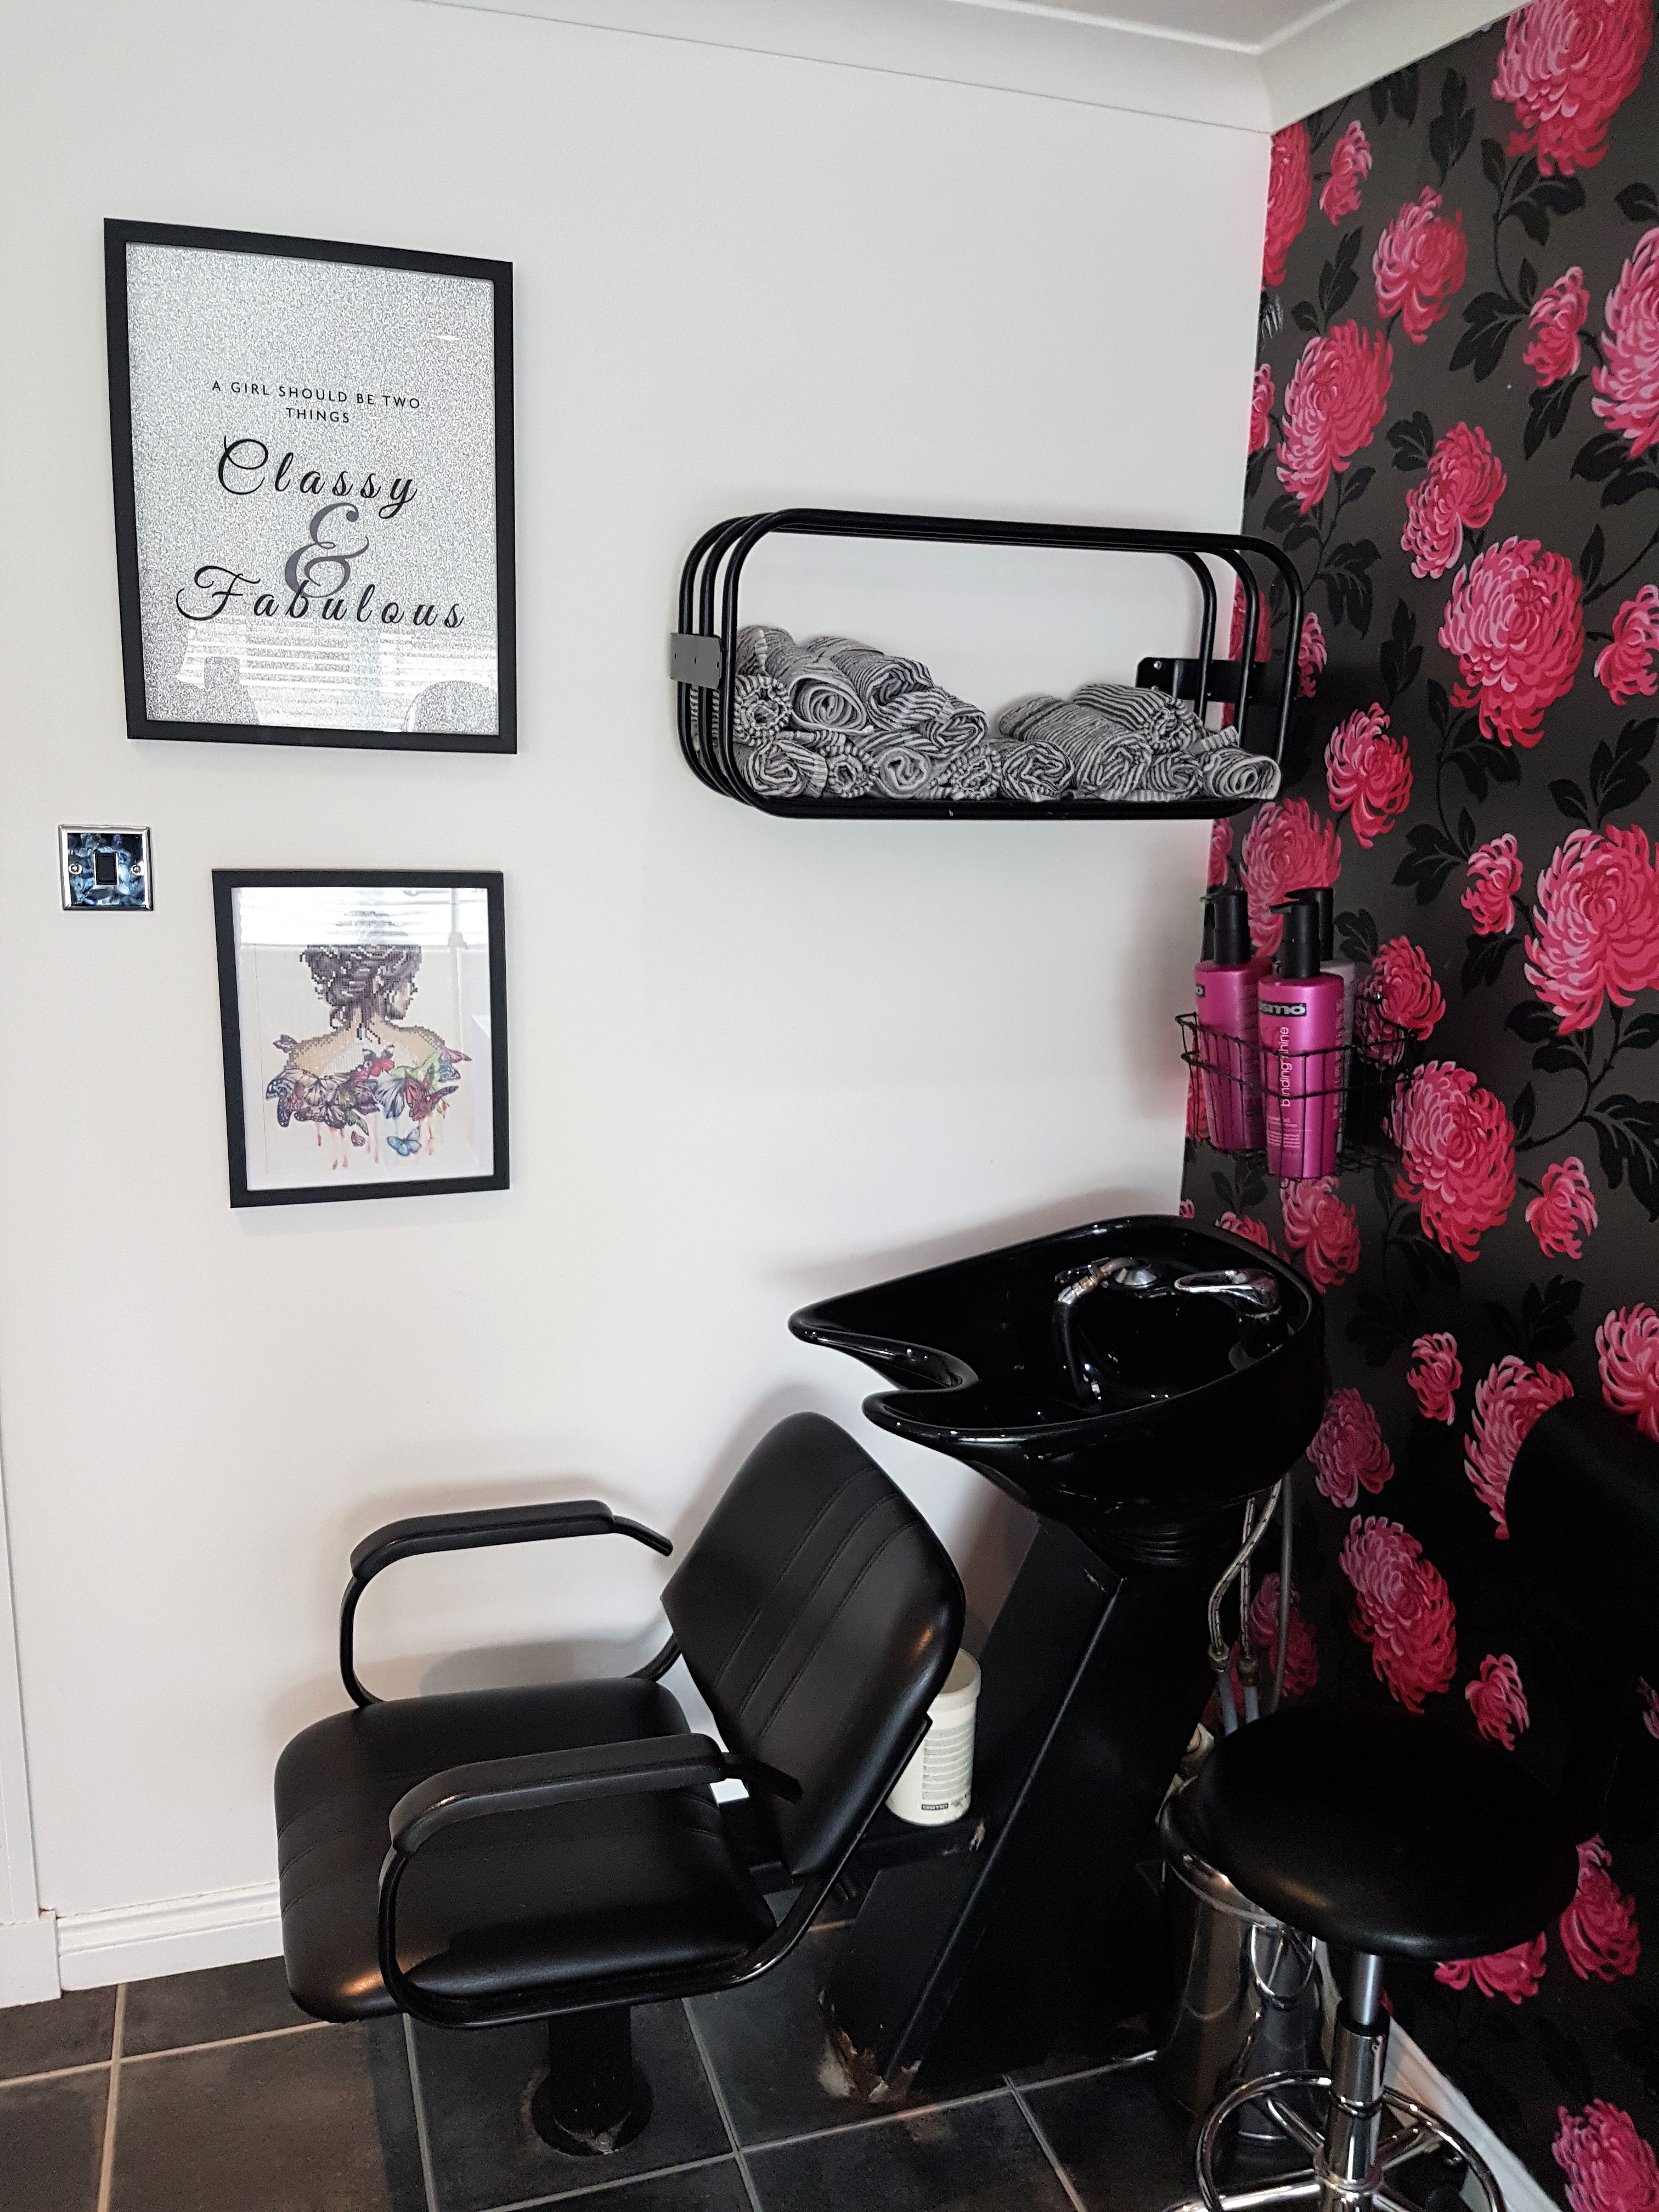 AM Hair Design Salon